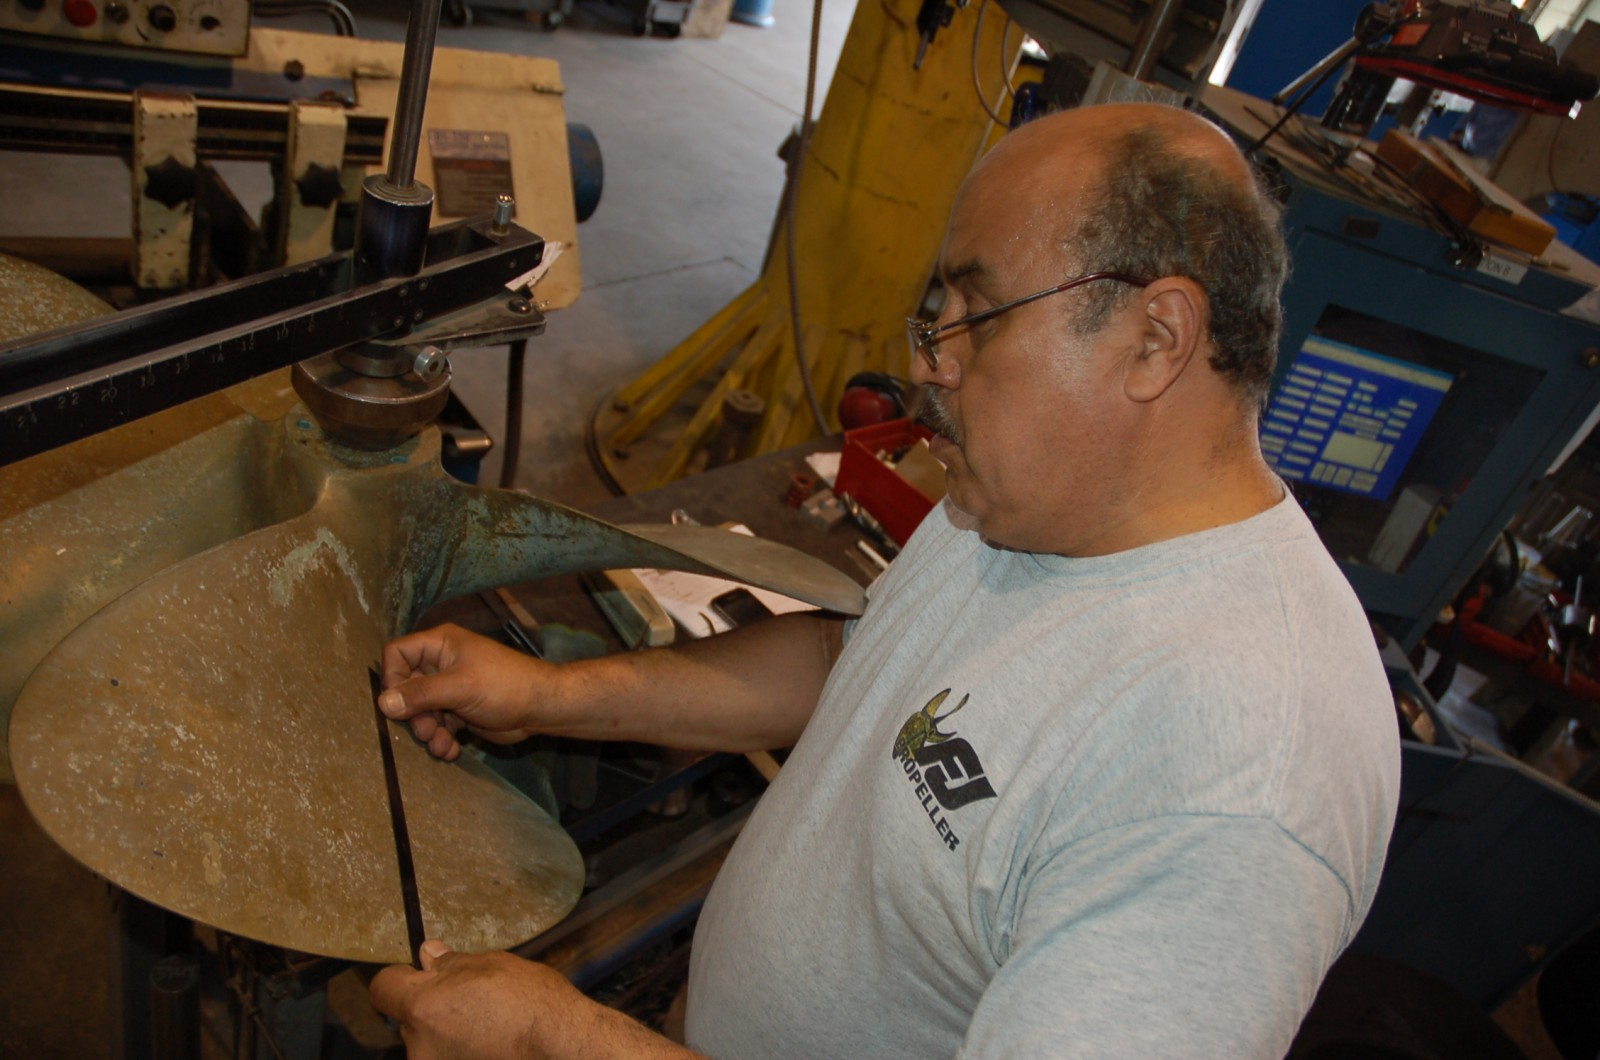 Salvador Mejia measures and marks damaged areas on a propeller at Frank & Jimmie's Propeller in Ft. Lauderdale last month. PHOTOS BY DORIE COX